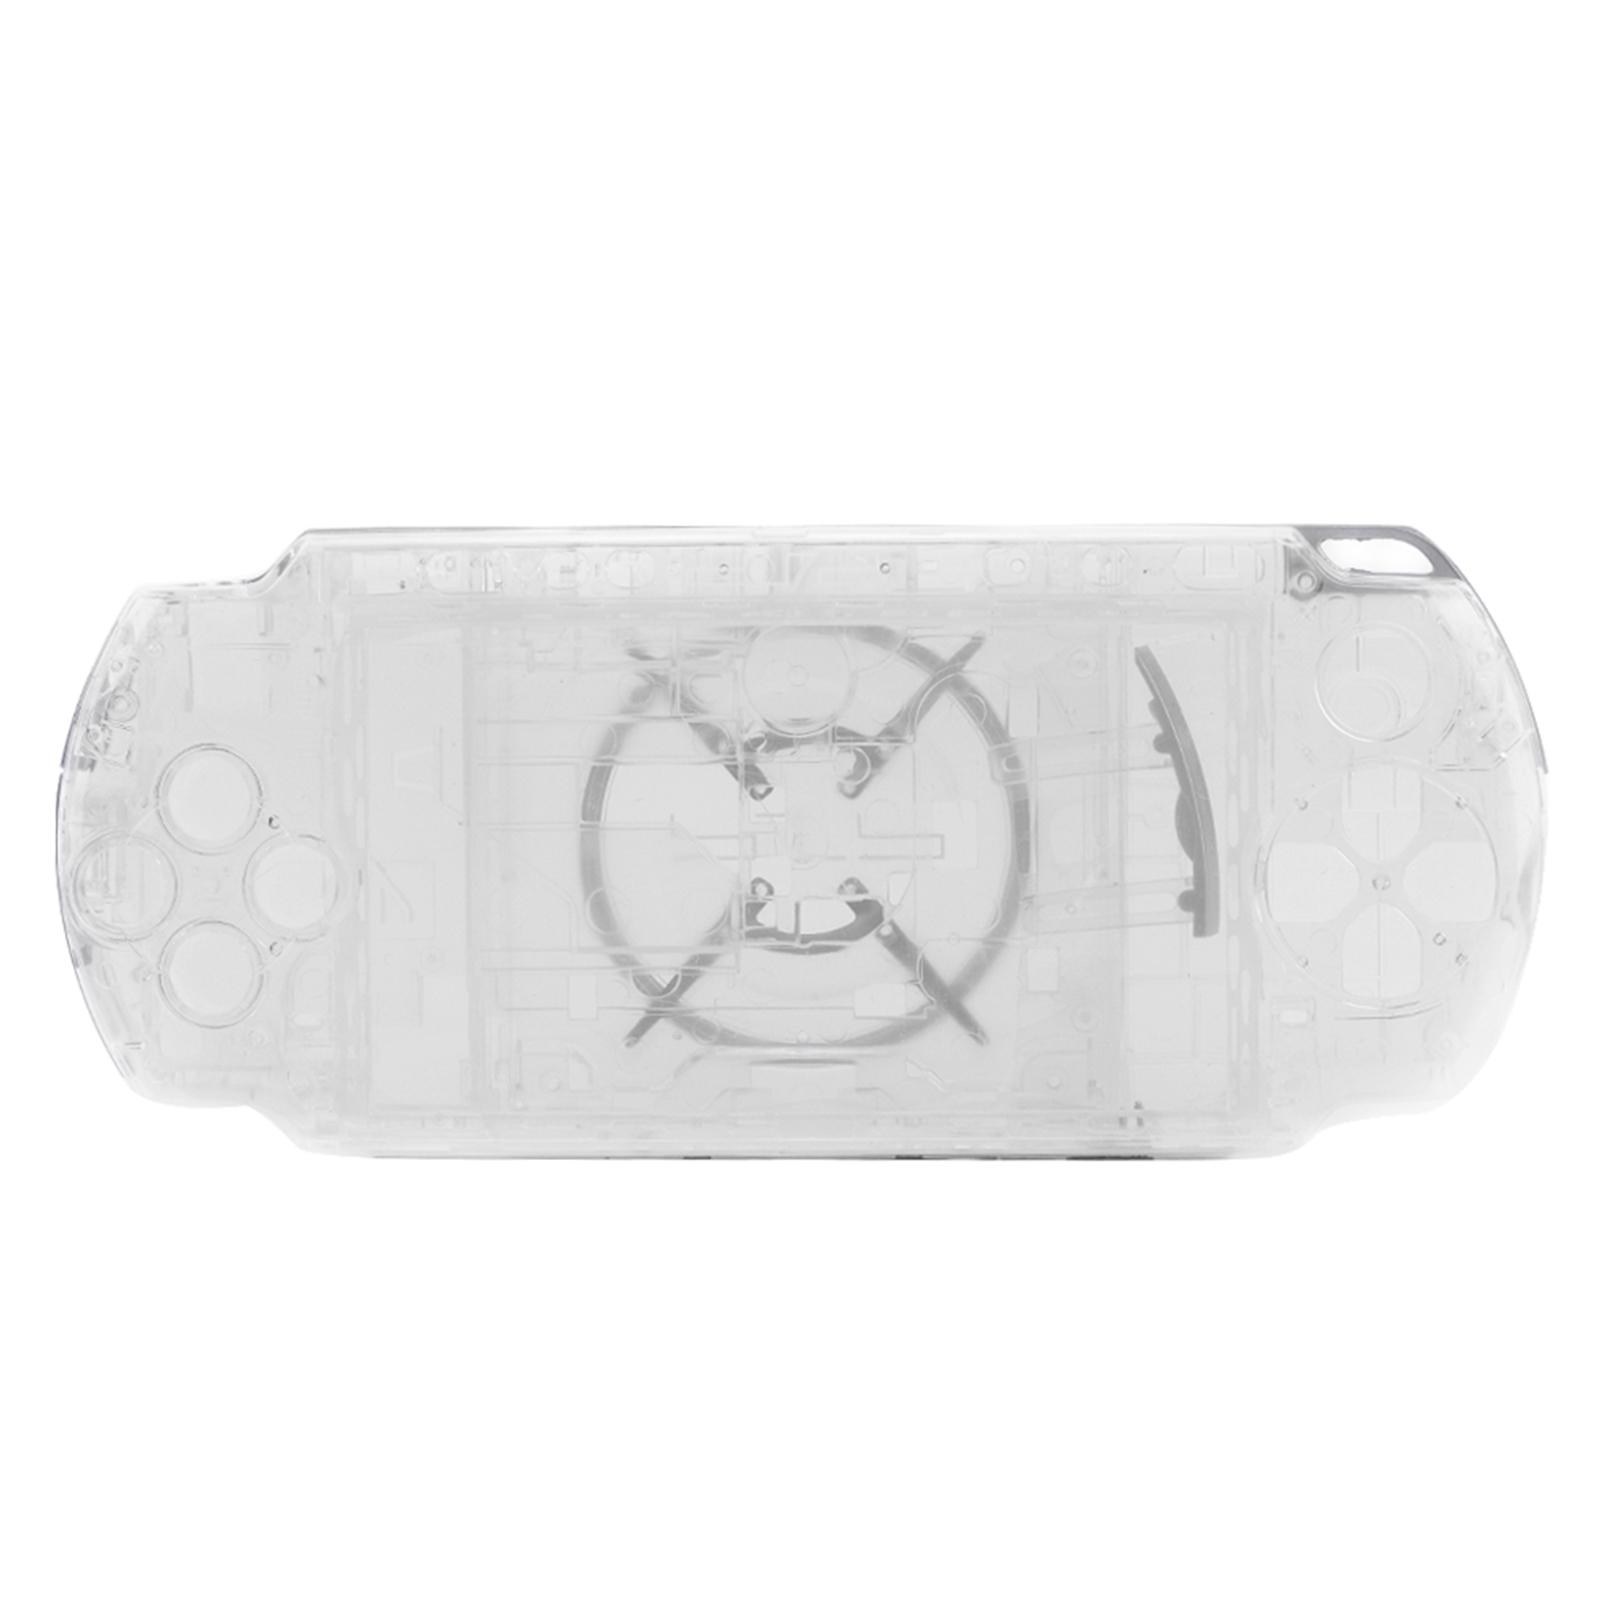 Full-Housing-Shell-Case-Cover-Faceplate-Set-Repair-Part-for-PSP-3000-Slim-Series thumbnail 17